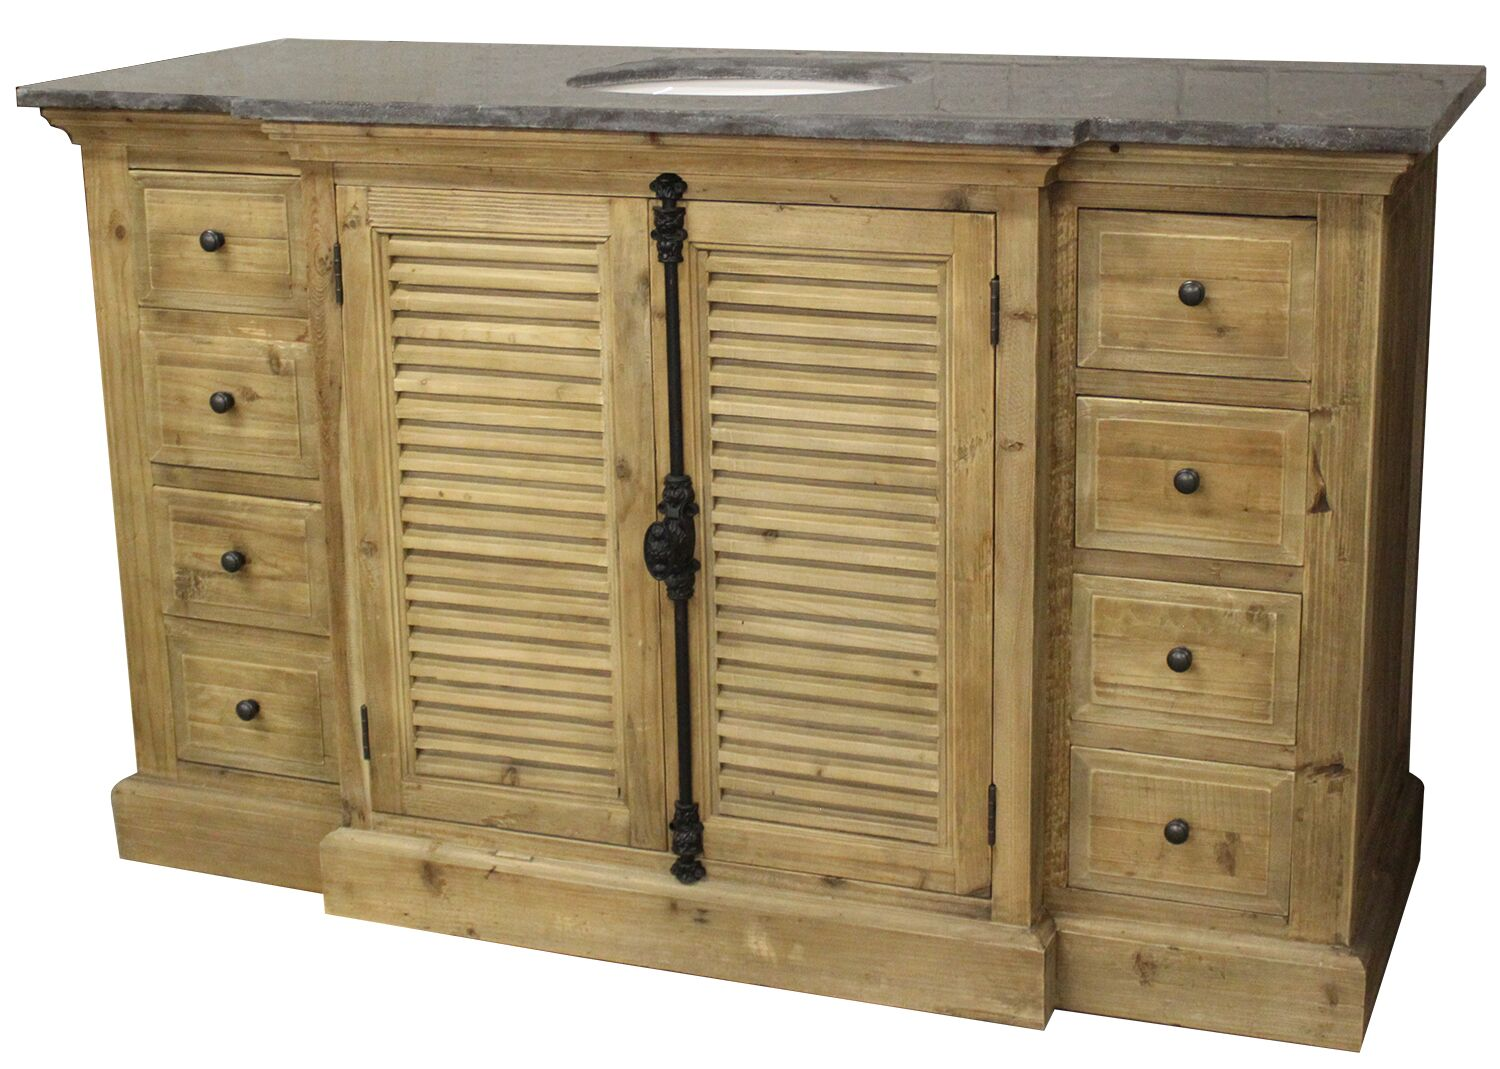 59 Handcrafted Reclaimed Pine Solid Wood Single Bath Vanity Natural Finish